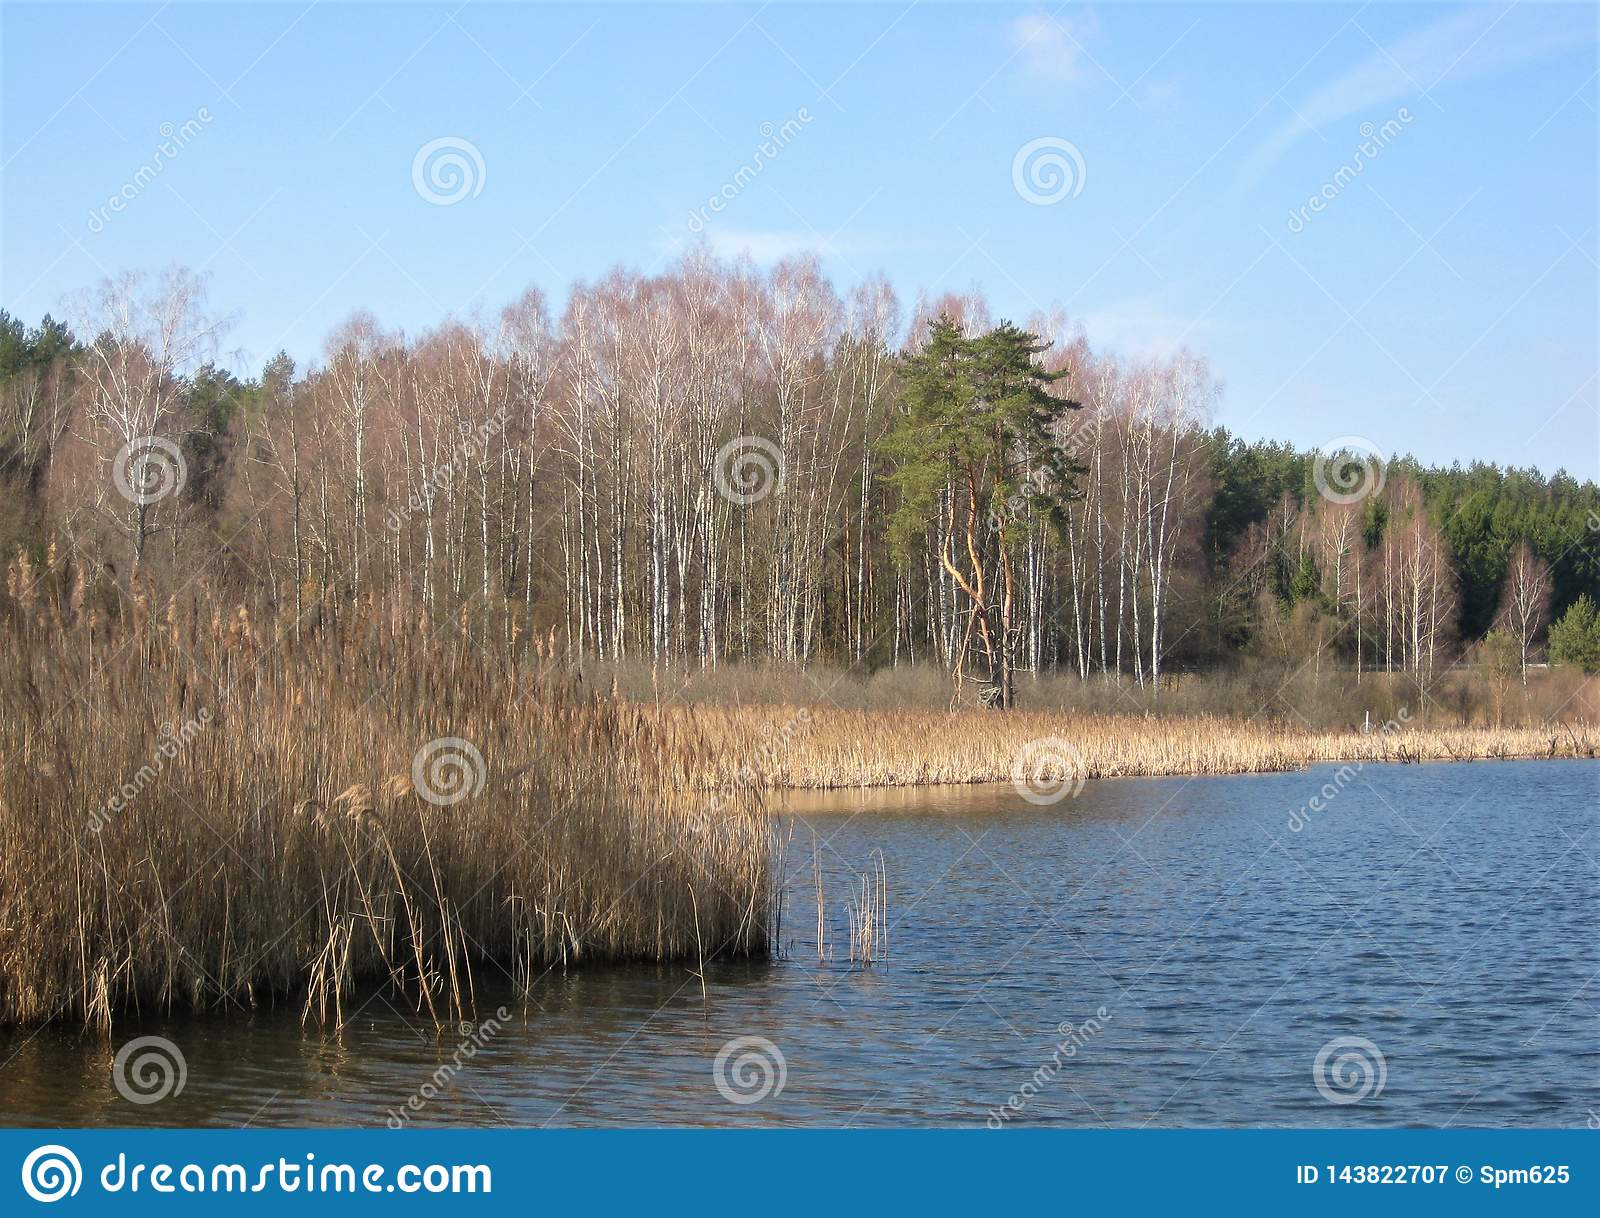 Macro photo with decorative background of spring landscape on the shore of a beautiful natural lake in the area of Lithuania